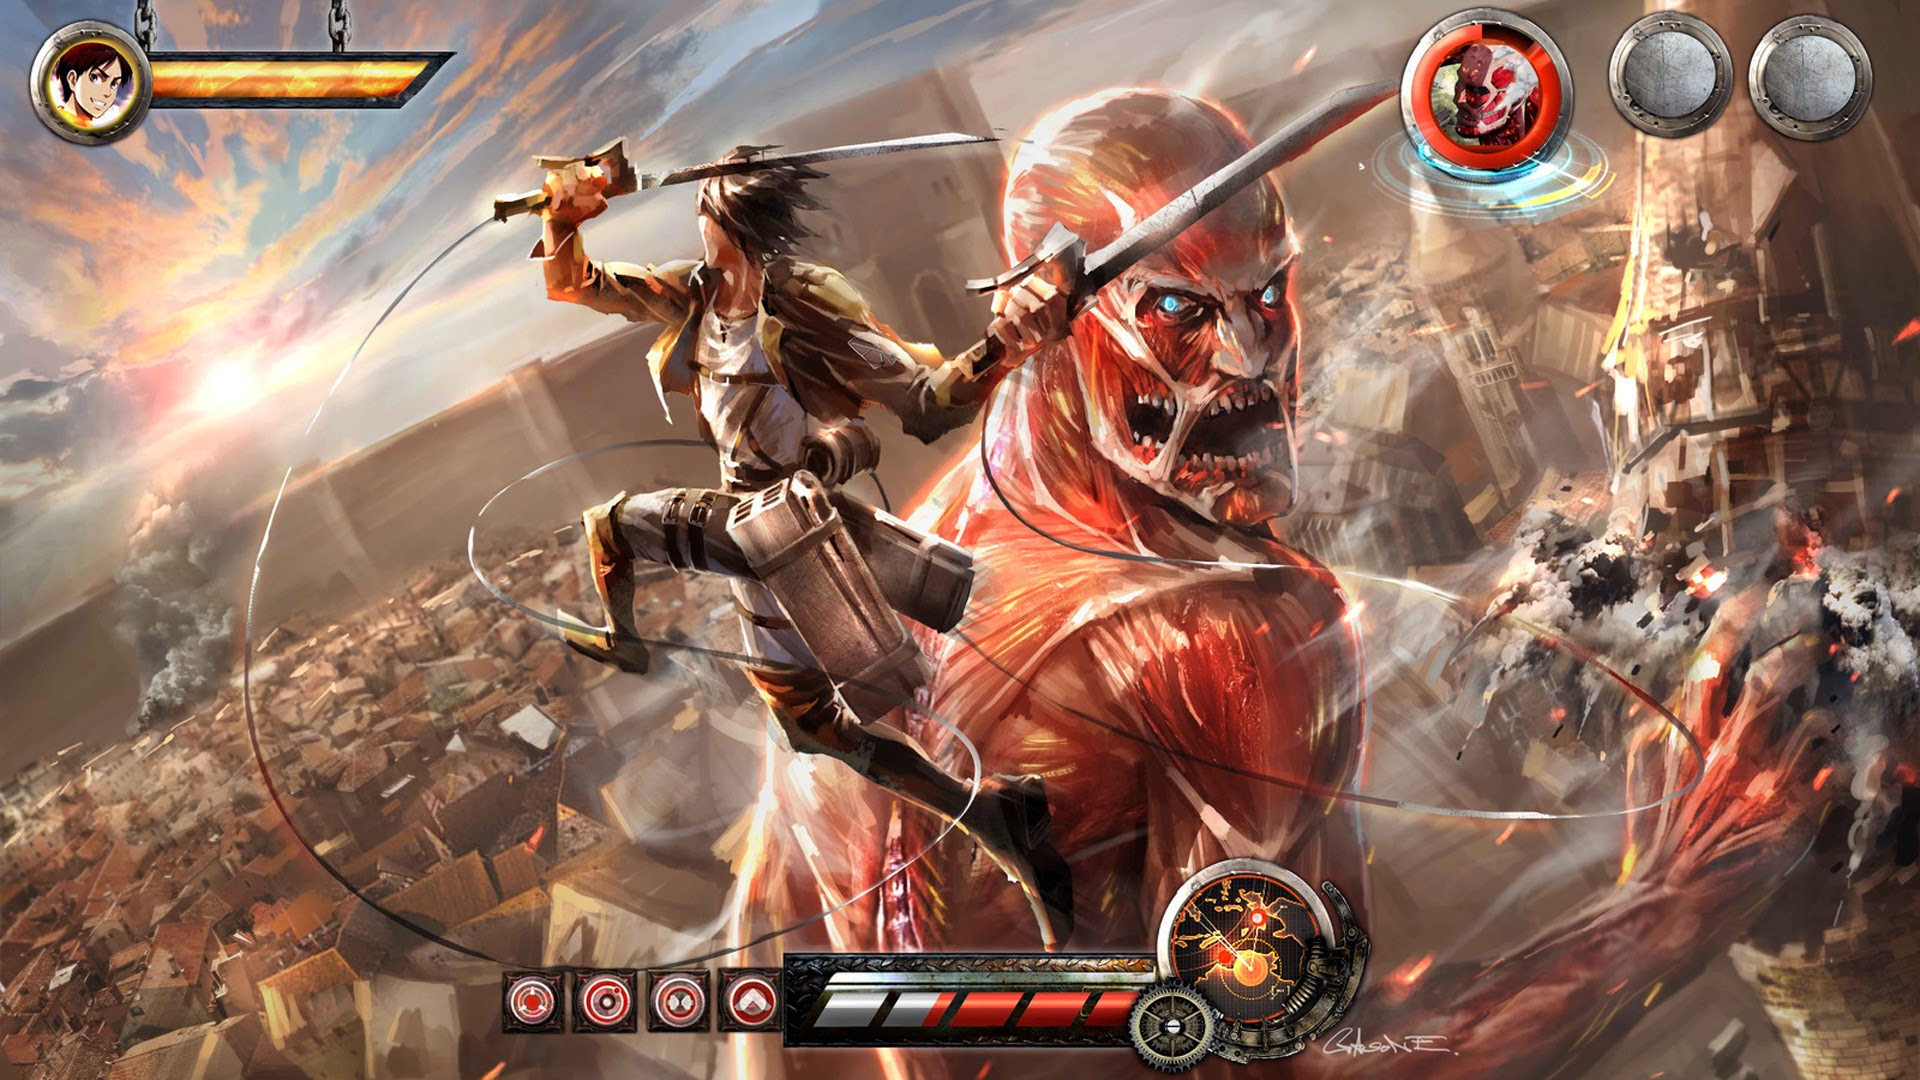 titan video game attack on titan shingeki no kyojin anime hd wallpaper 1920x1080